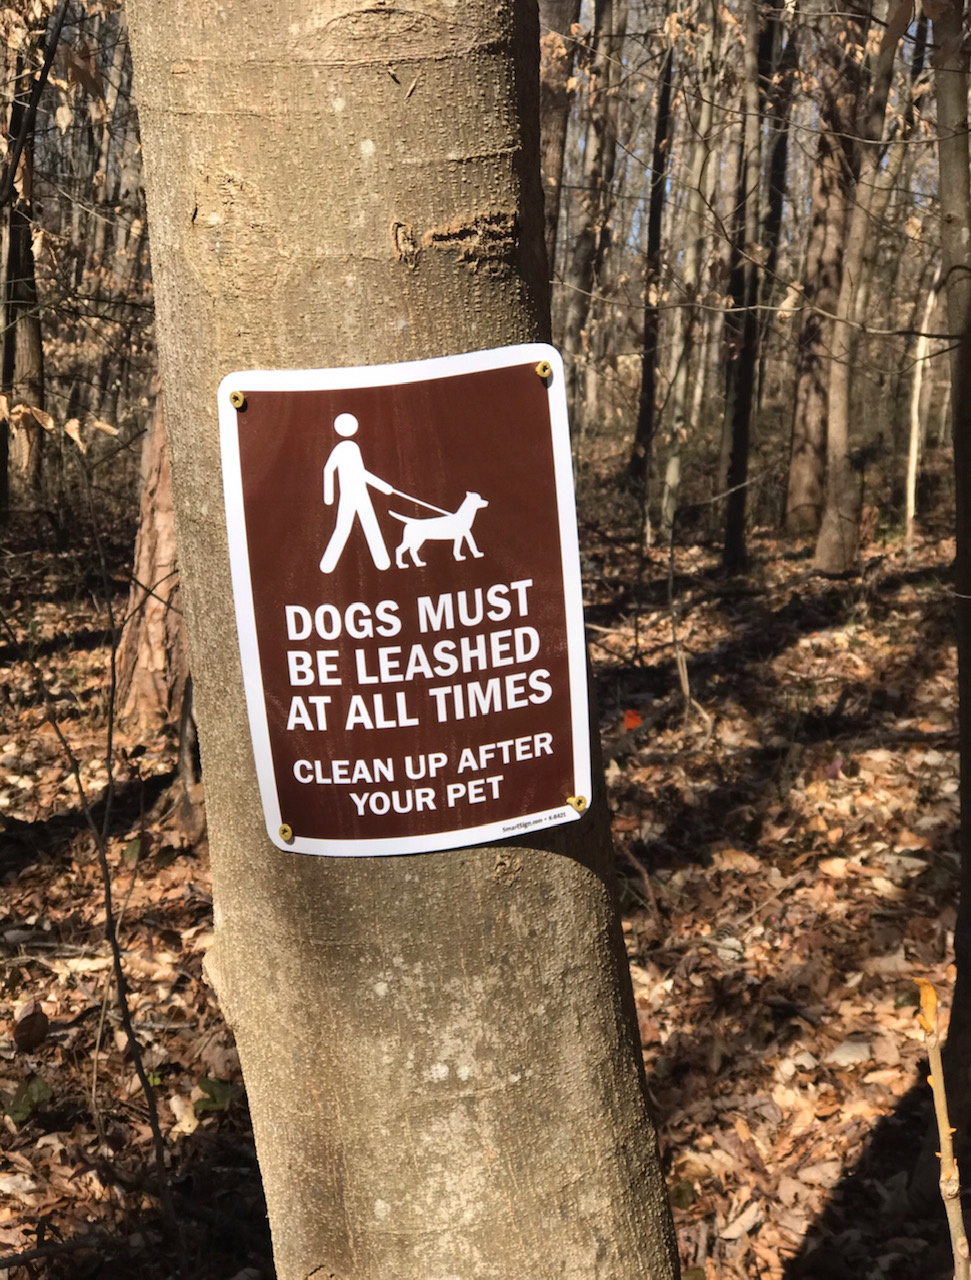 All dogs must be leashed sign on a tree